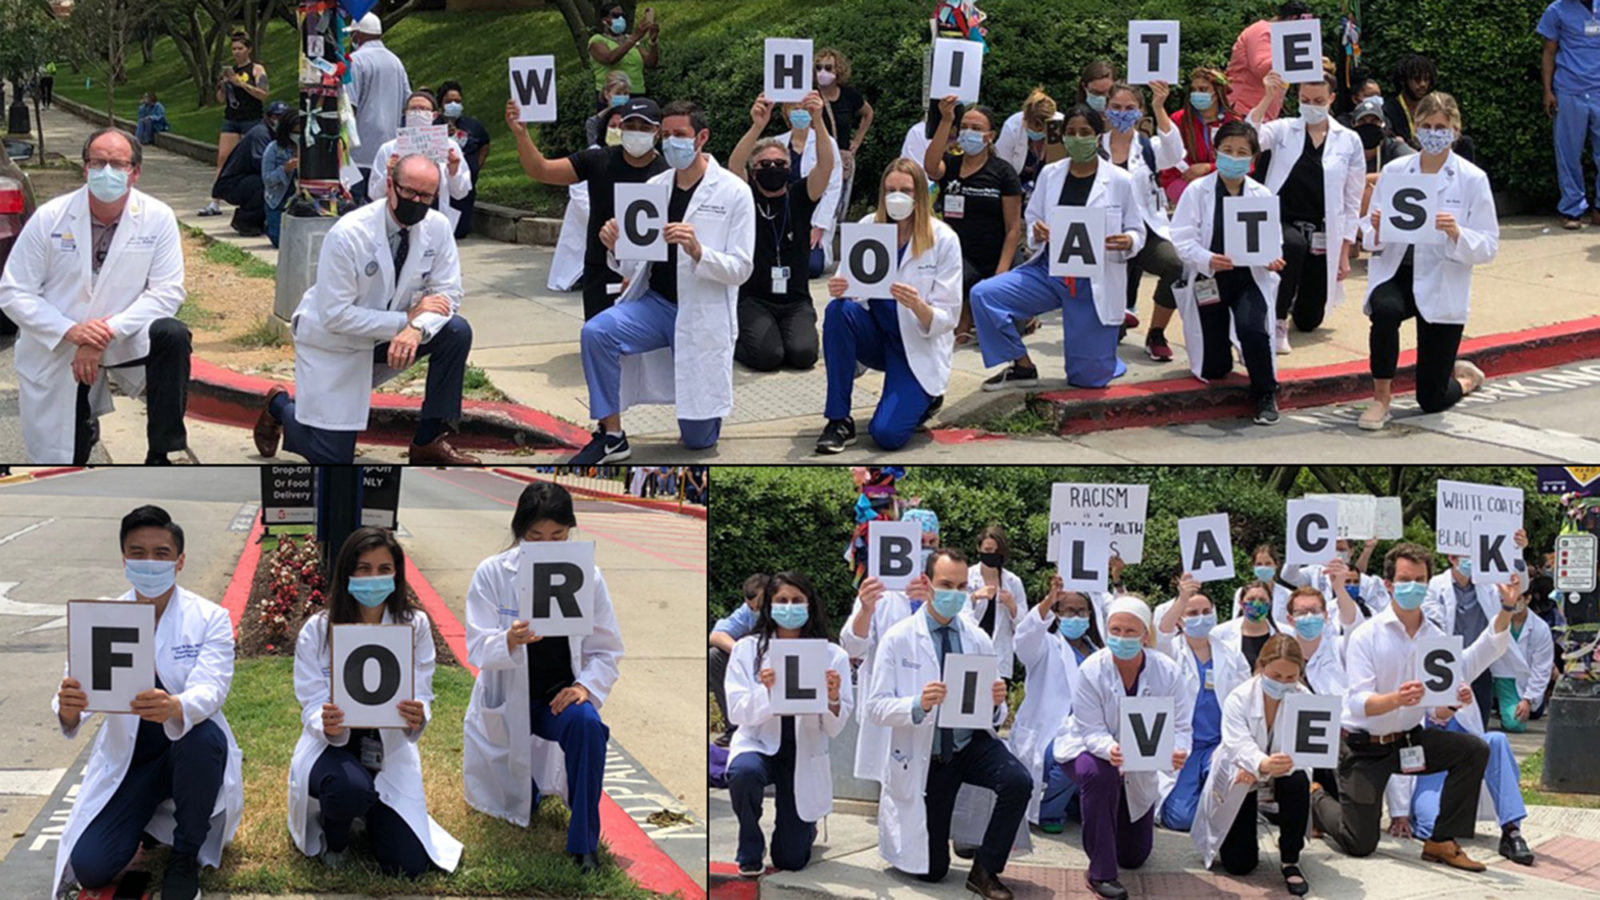 Docotors wearing white coats kneel holding signs thet read White Coats for Black Lives.